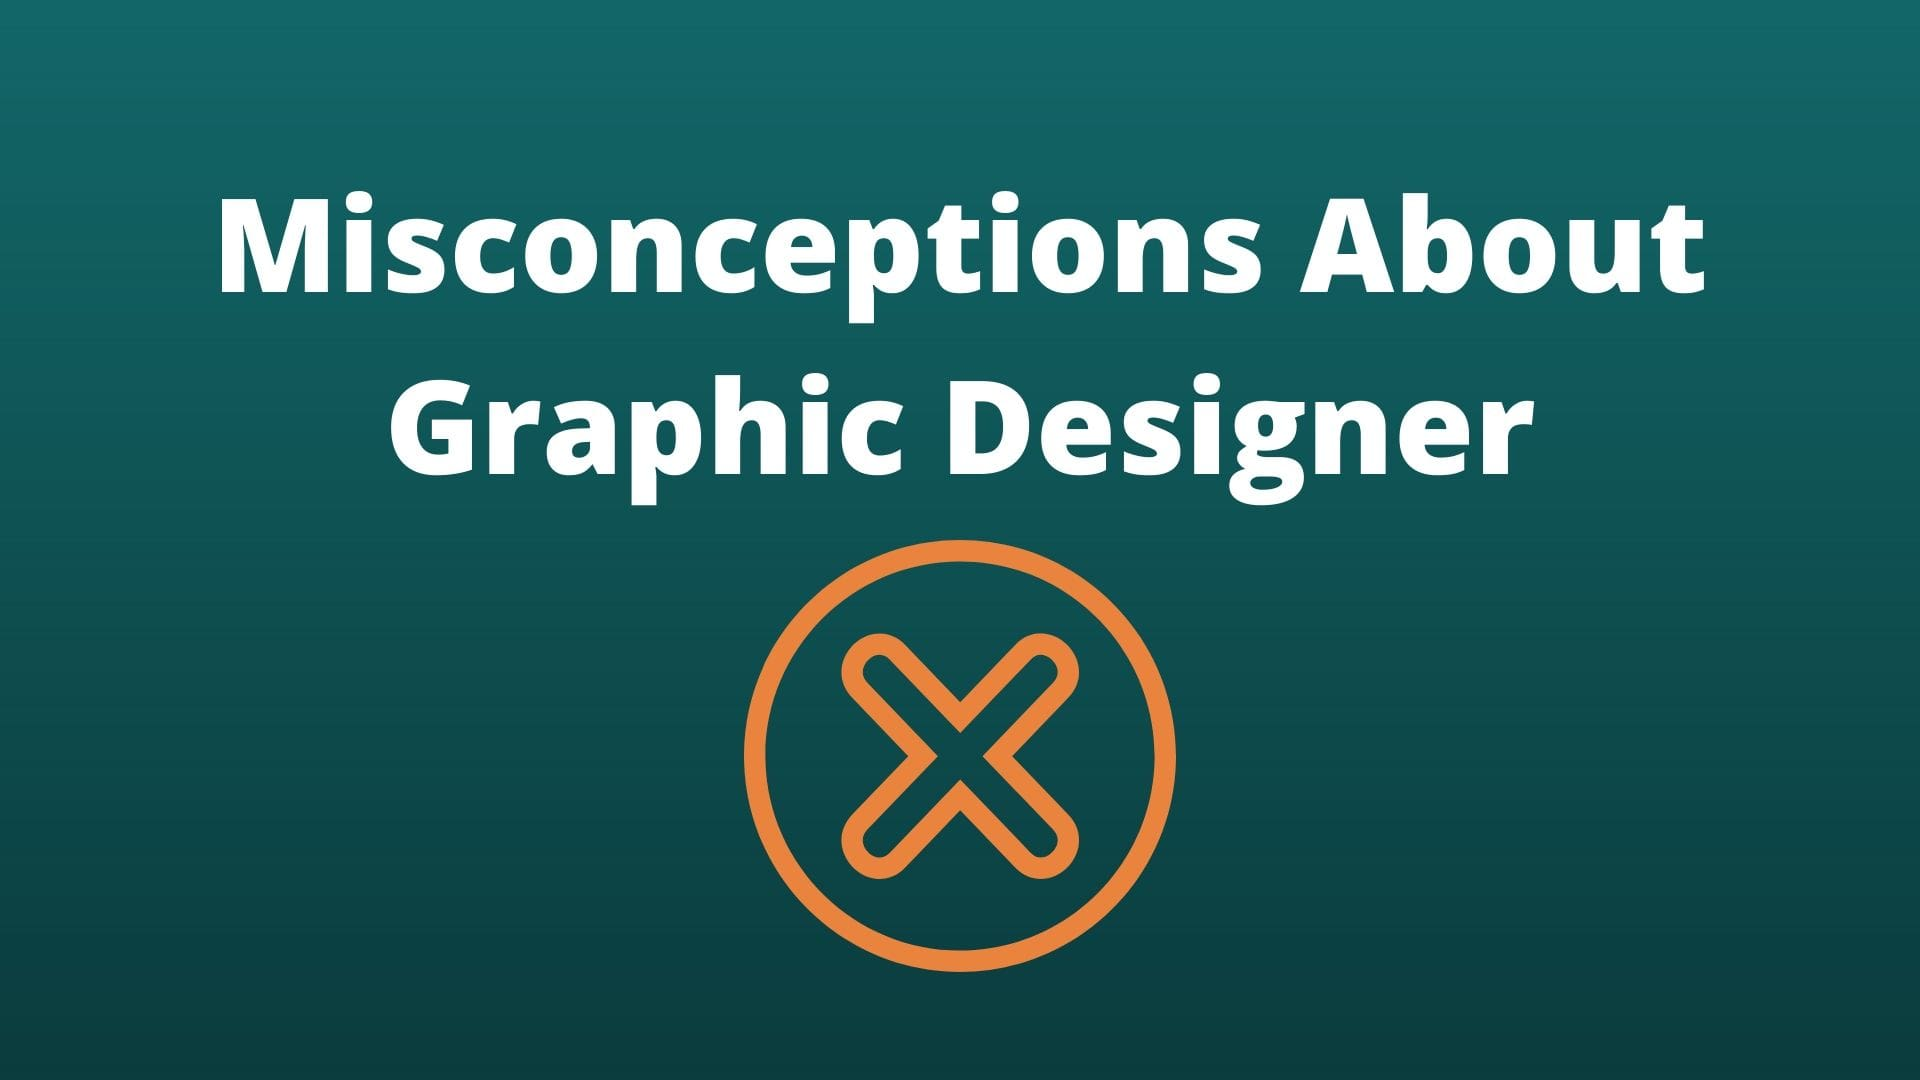 Misconceptions About Graphic Designer